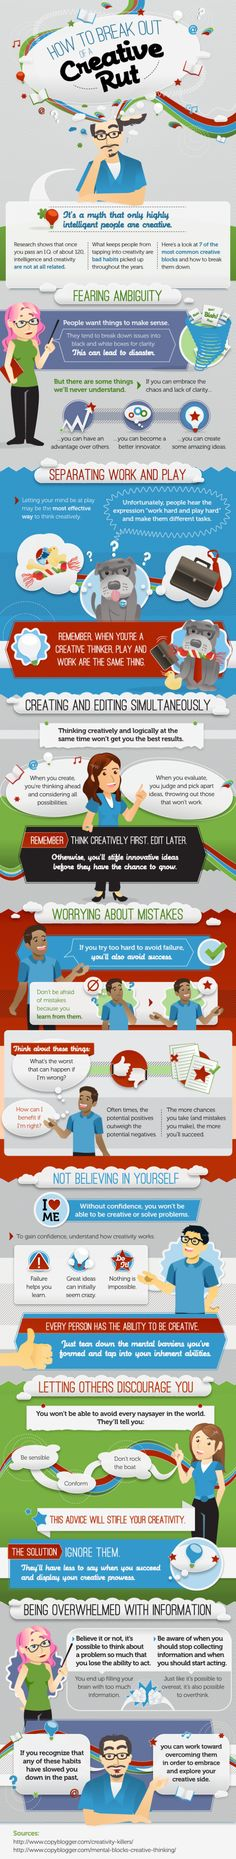 How to Break Out of a Creative Rut [Infographic]